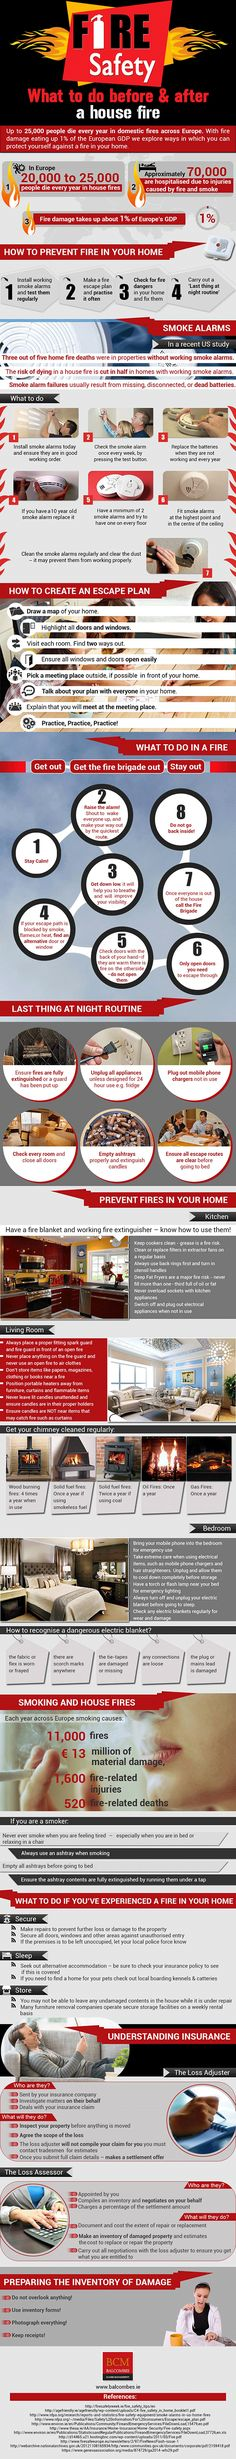 Home Fire Safety [Infographic] | Safety content from EHS Today